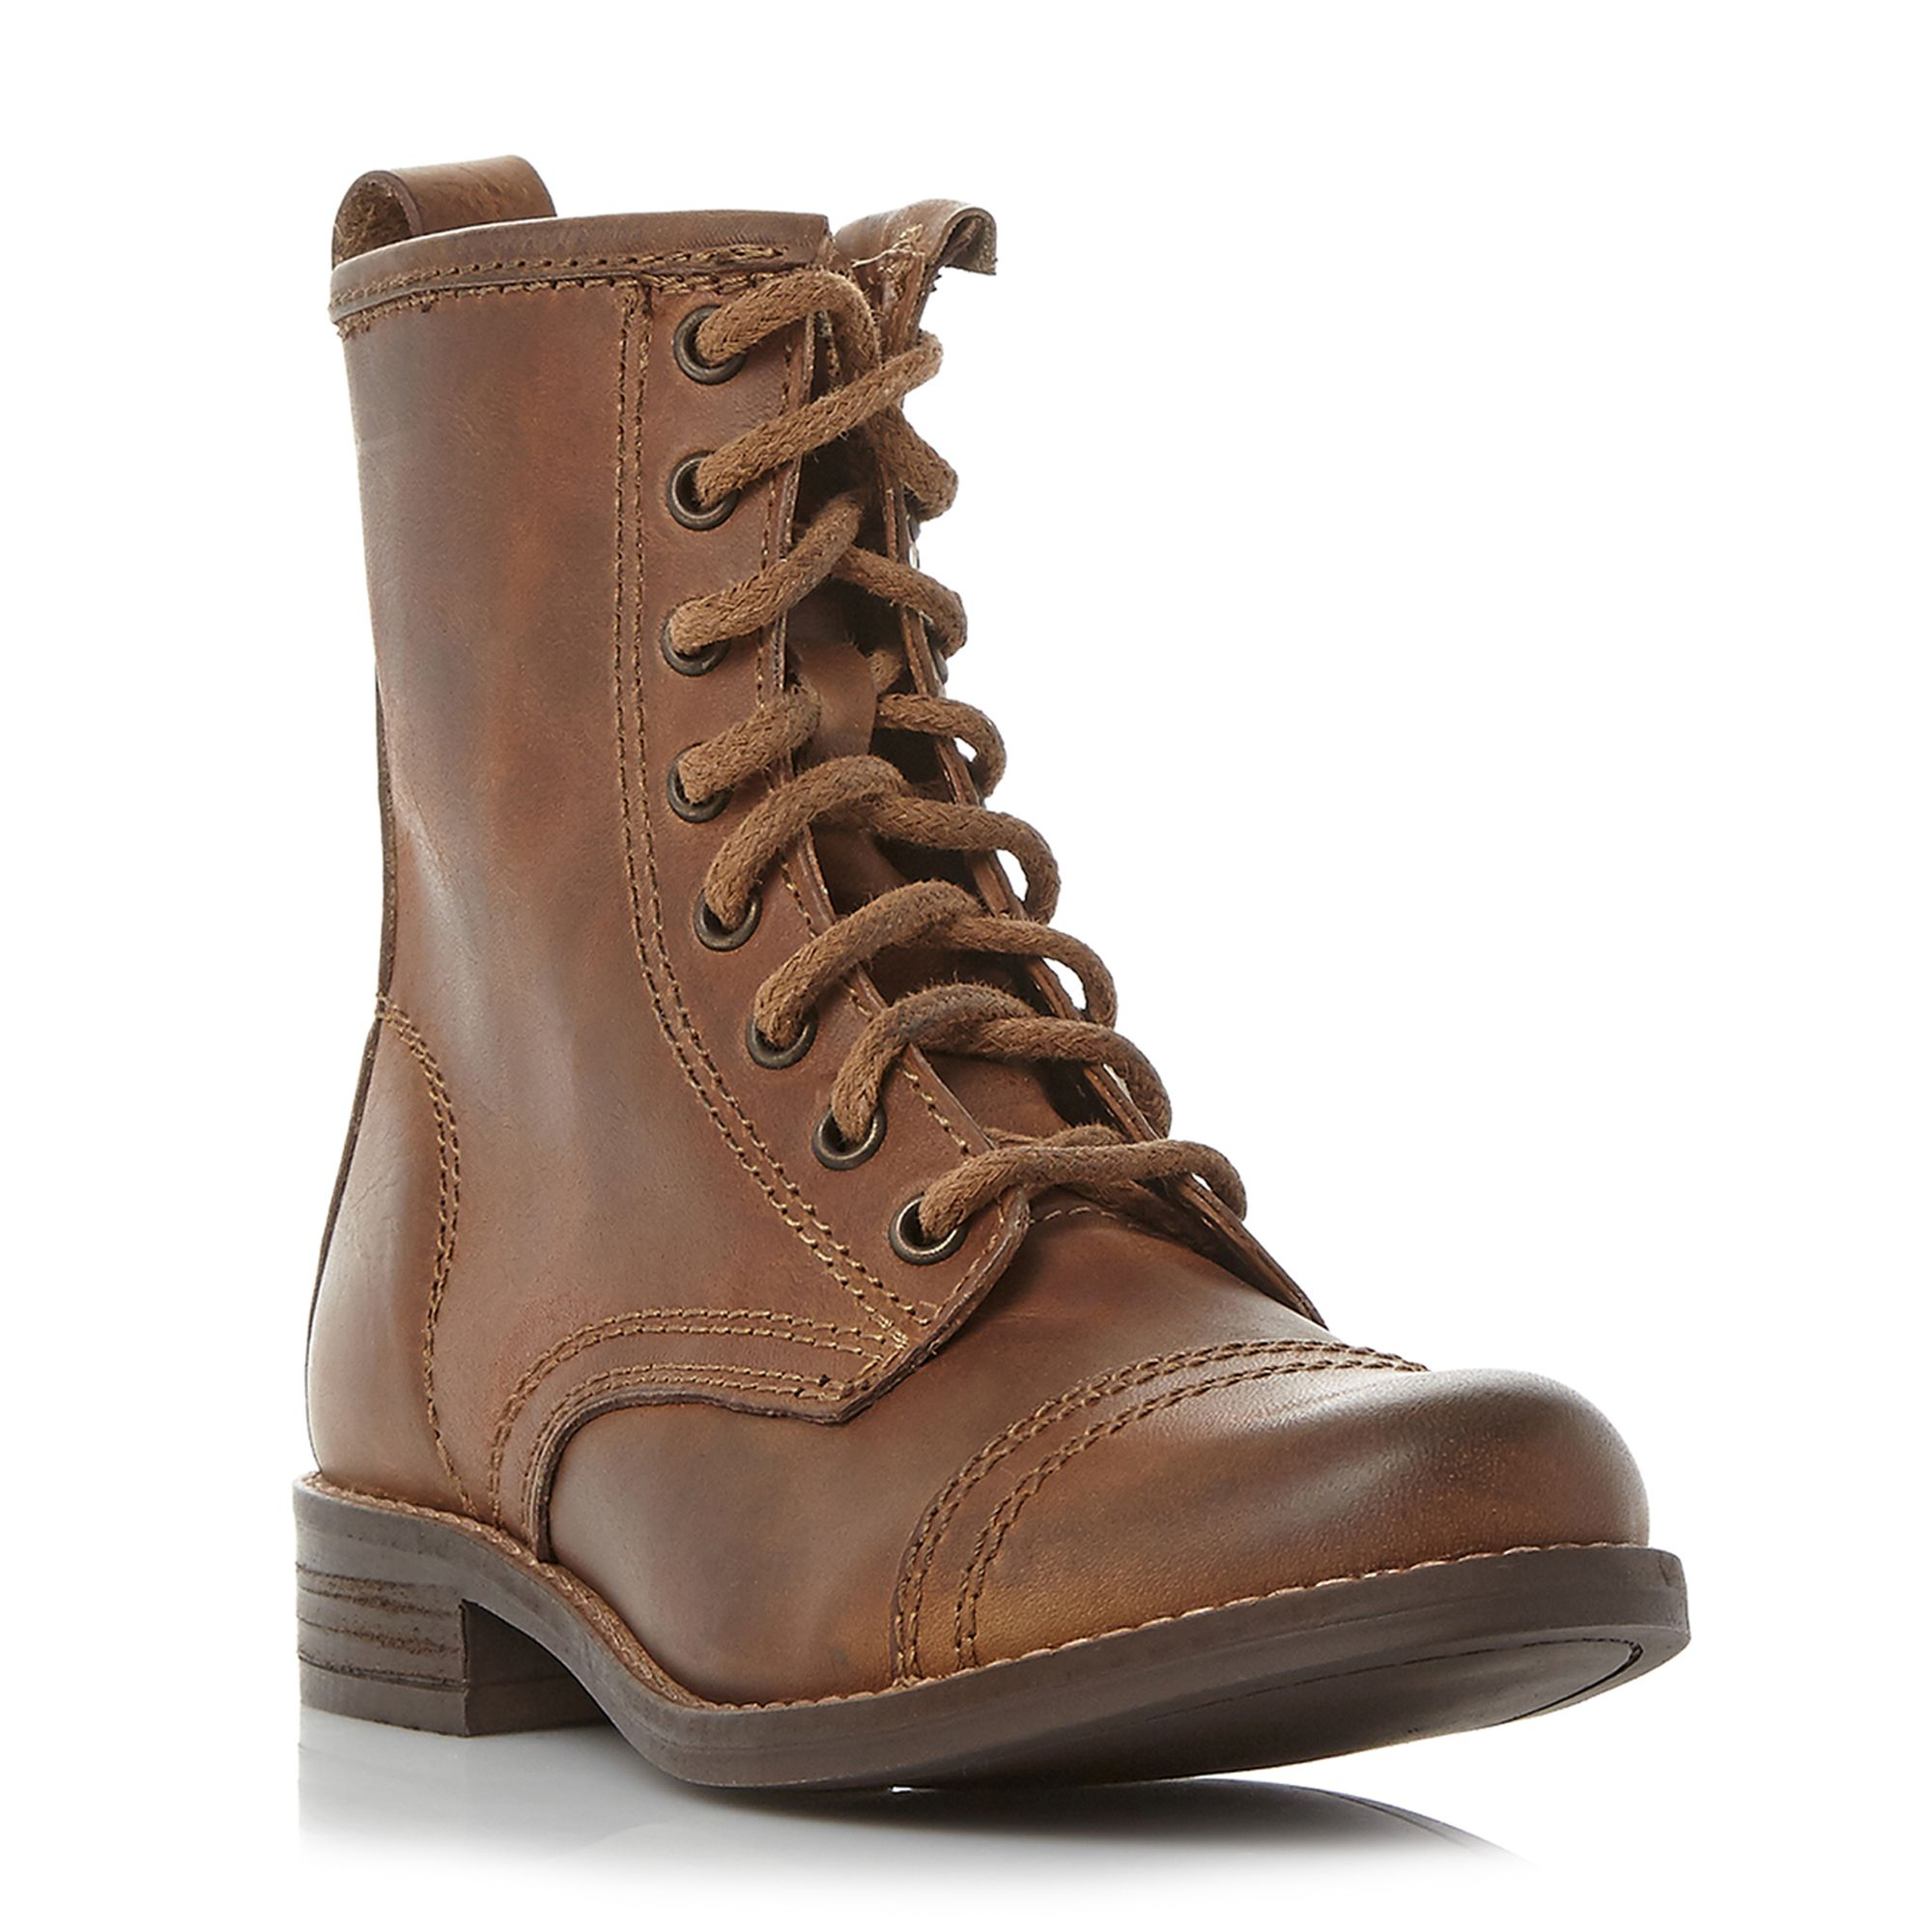 Steve Madden Charrie lace up biker boots Brown